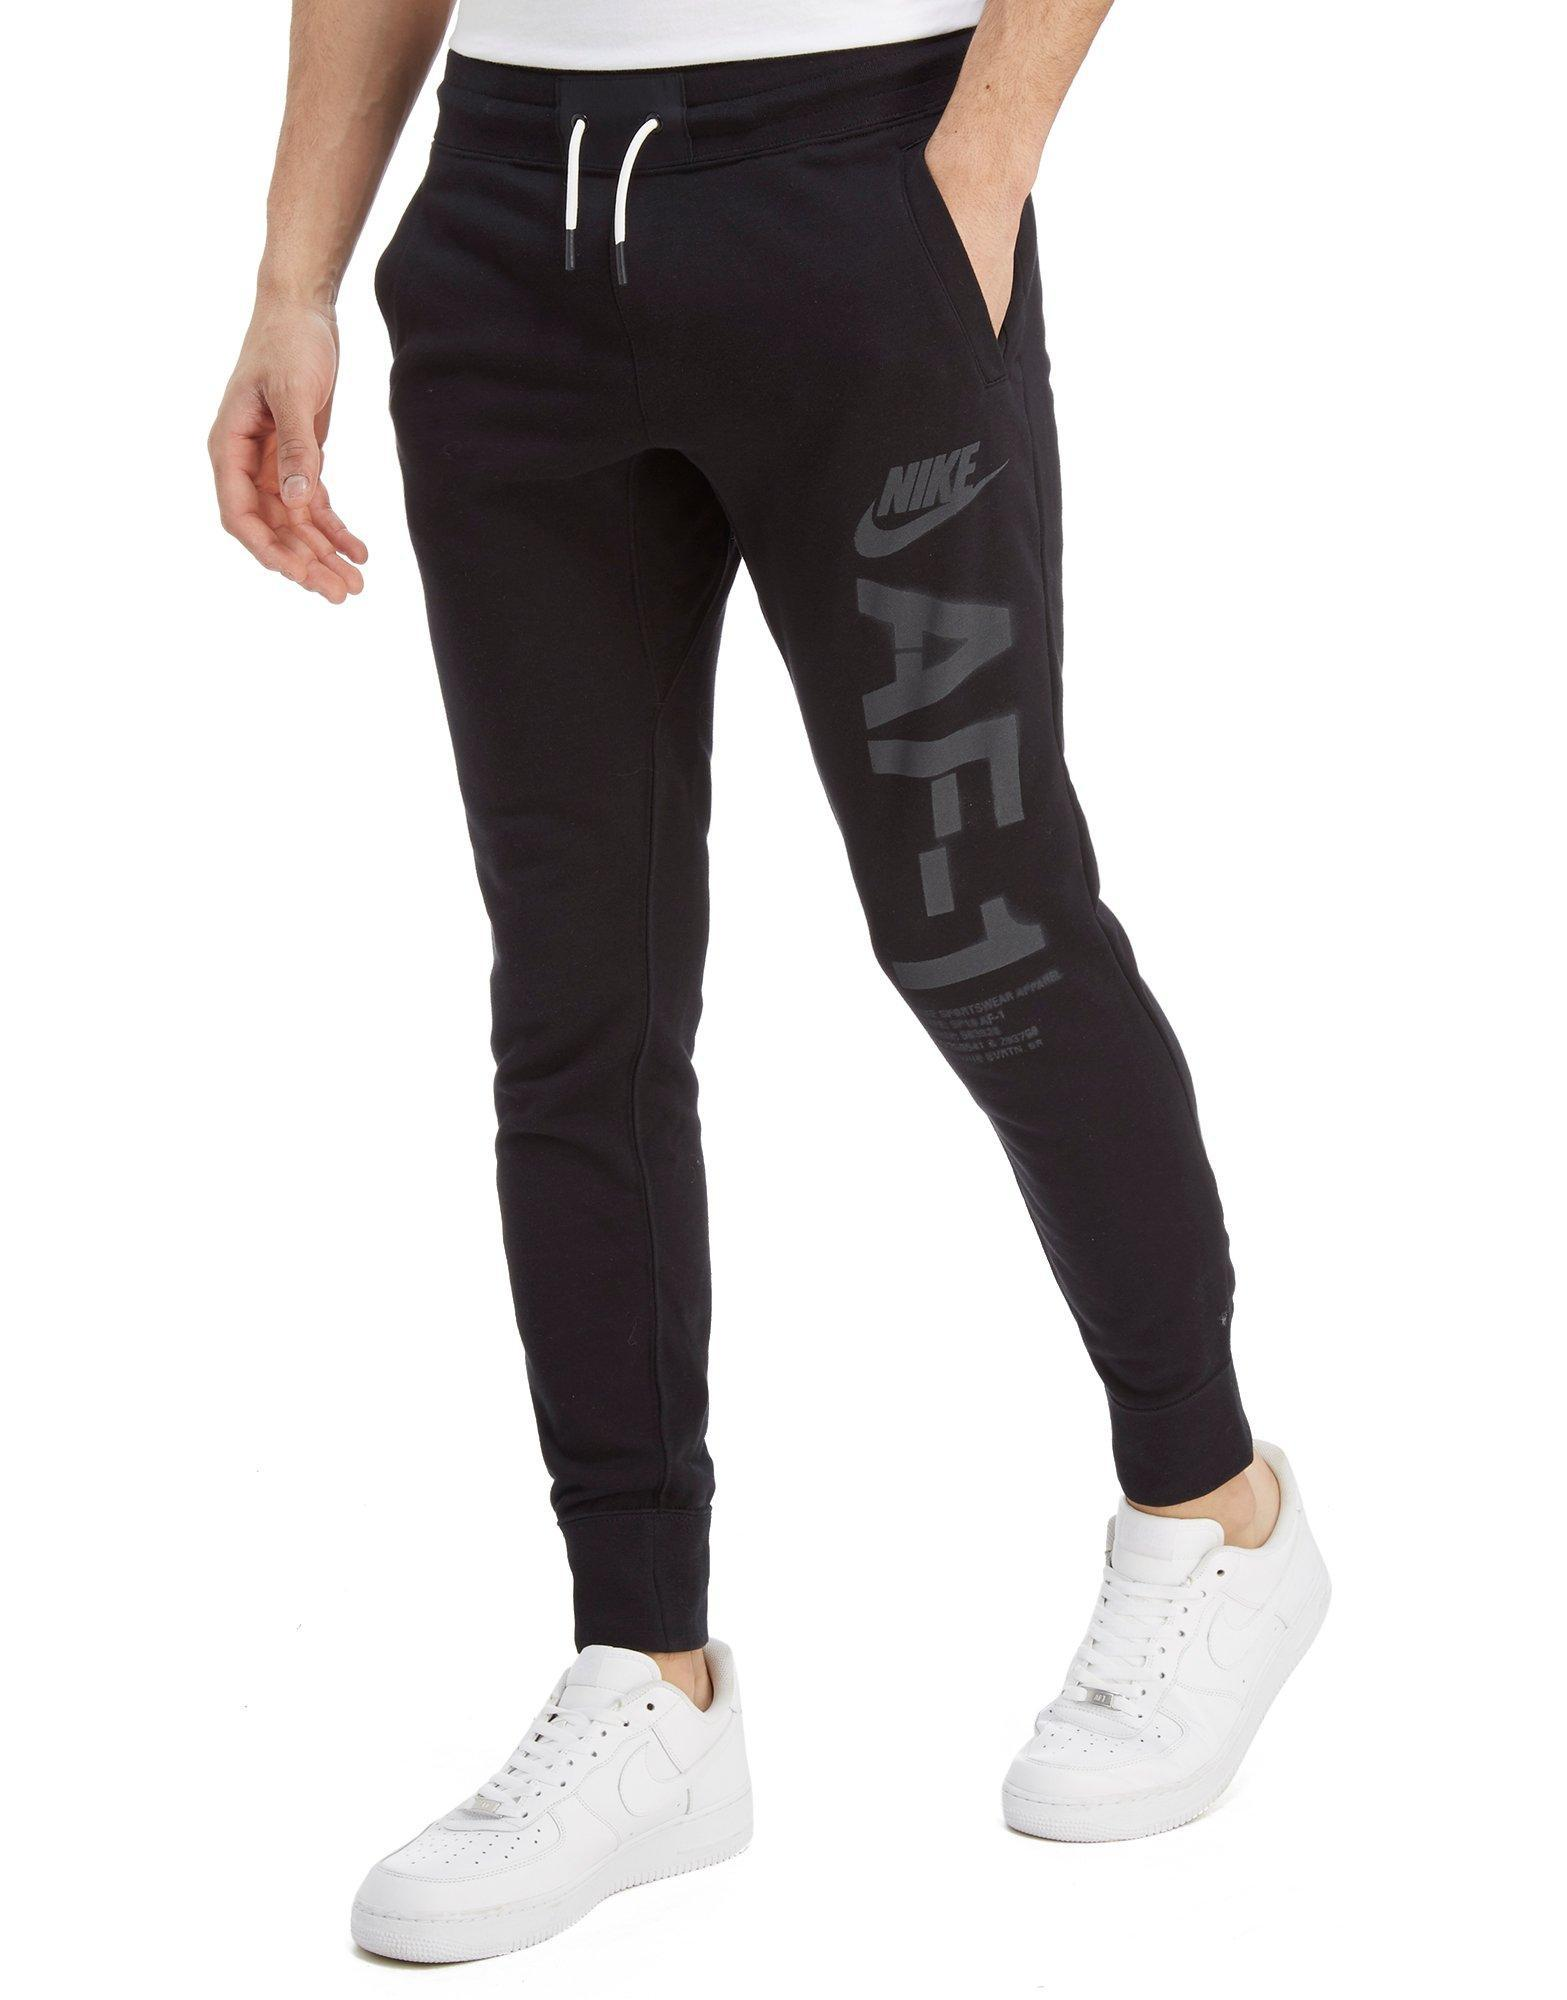 new concept 11c1b f2afa ... usa lyst nike air force 1 pants in black for men ae3b5 74c99